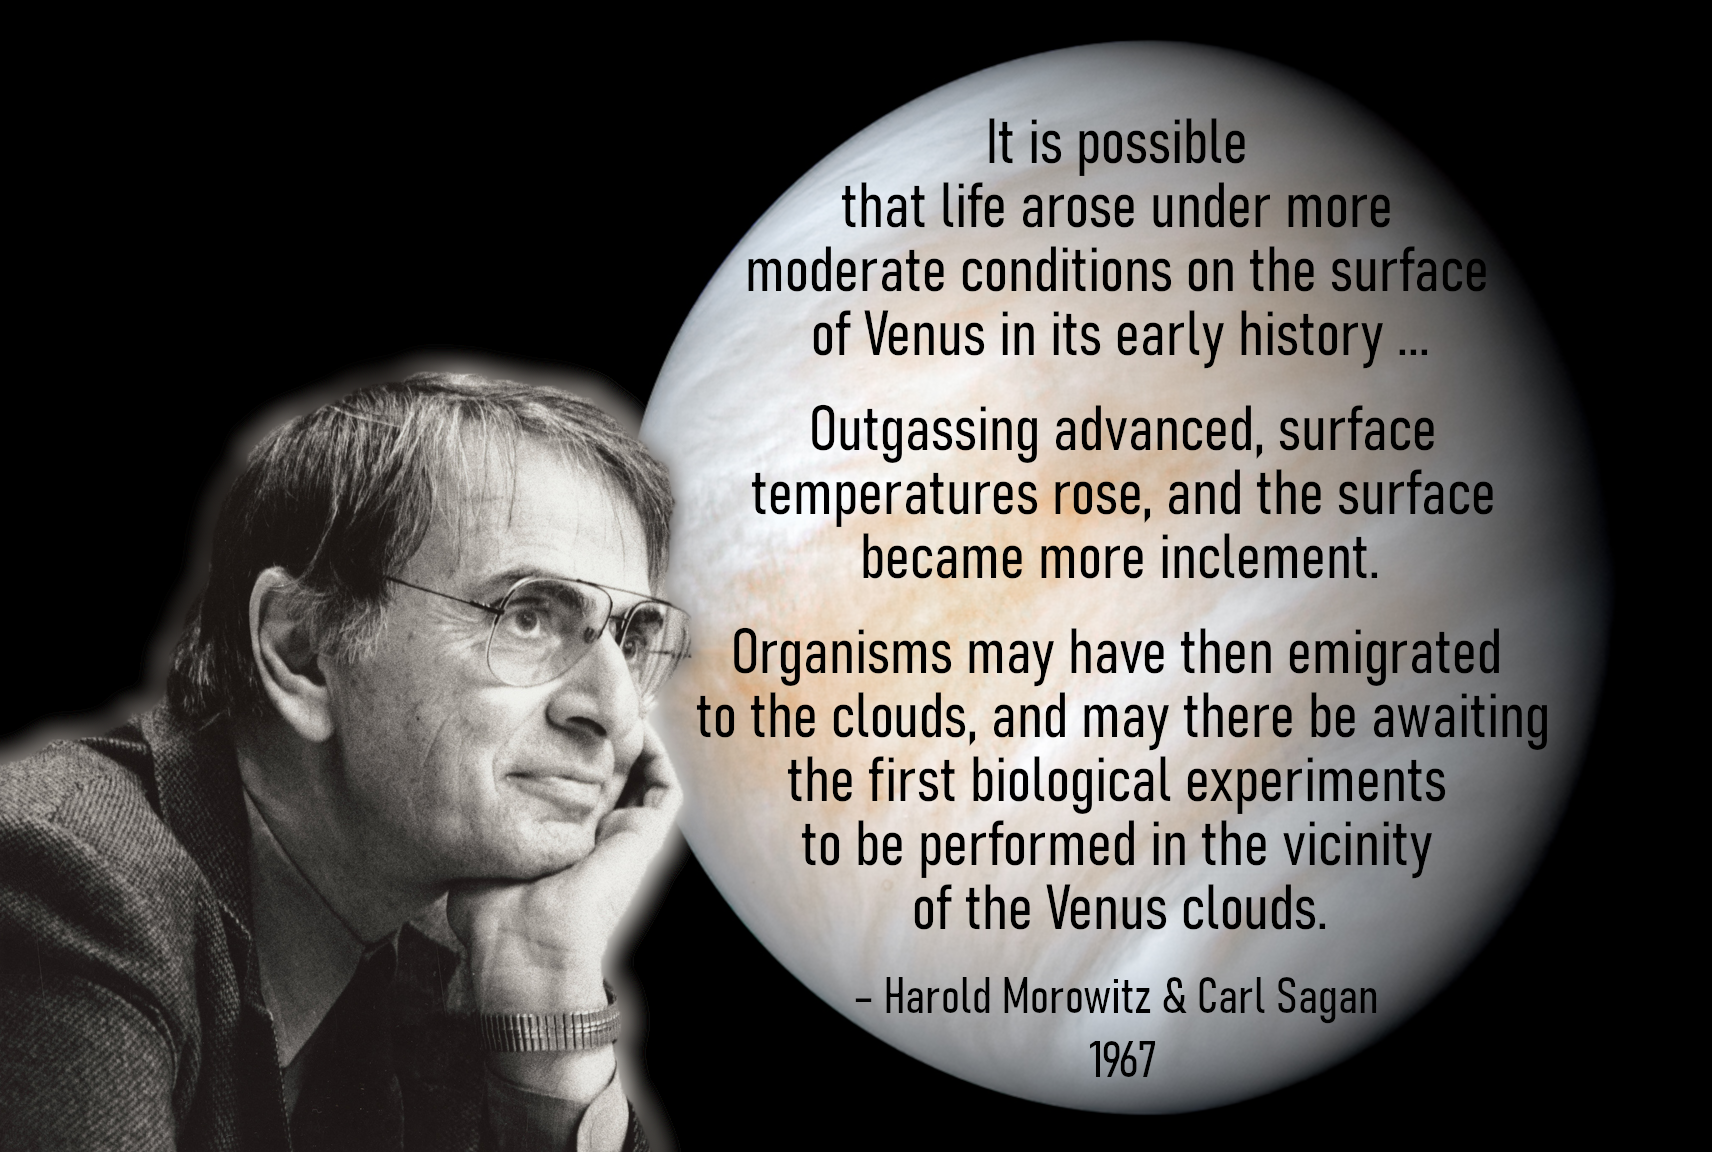 """""""awaiting the first biological experiments to be performed in the vicinity of the Venus clouds"""" – Harold Morowitz & Carl Sagan, 1967. [1712×1152] [OC]"""